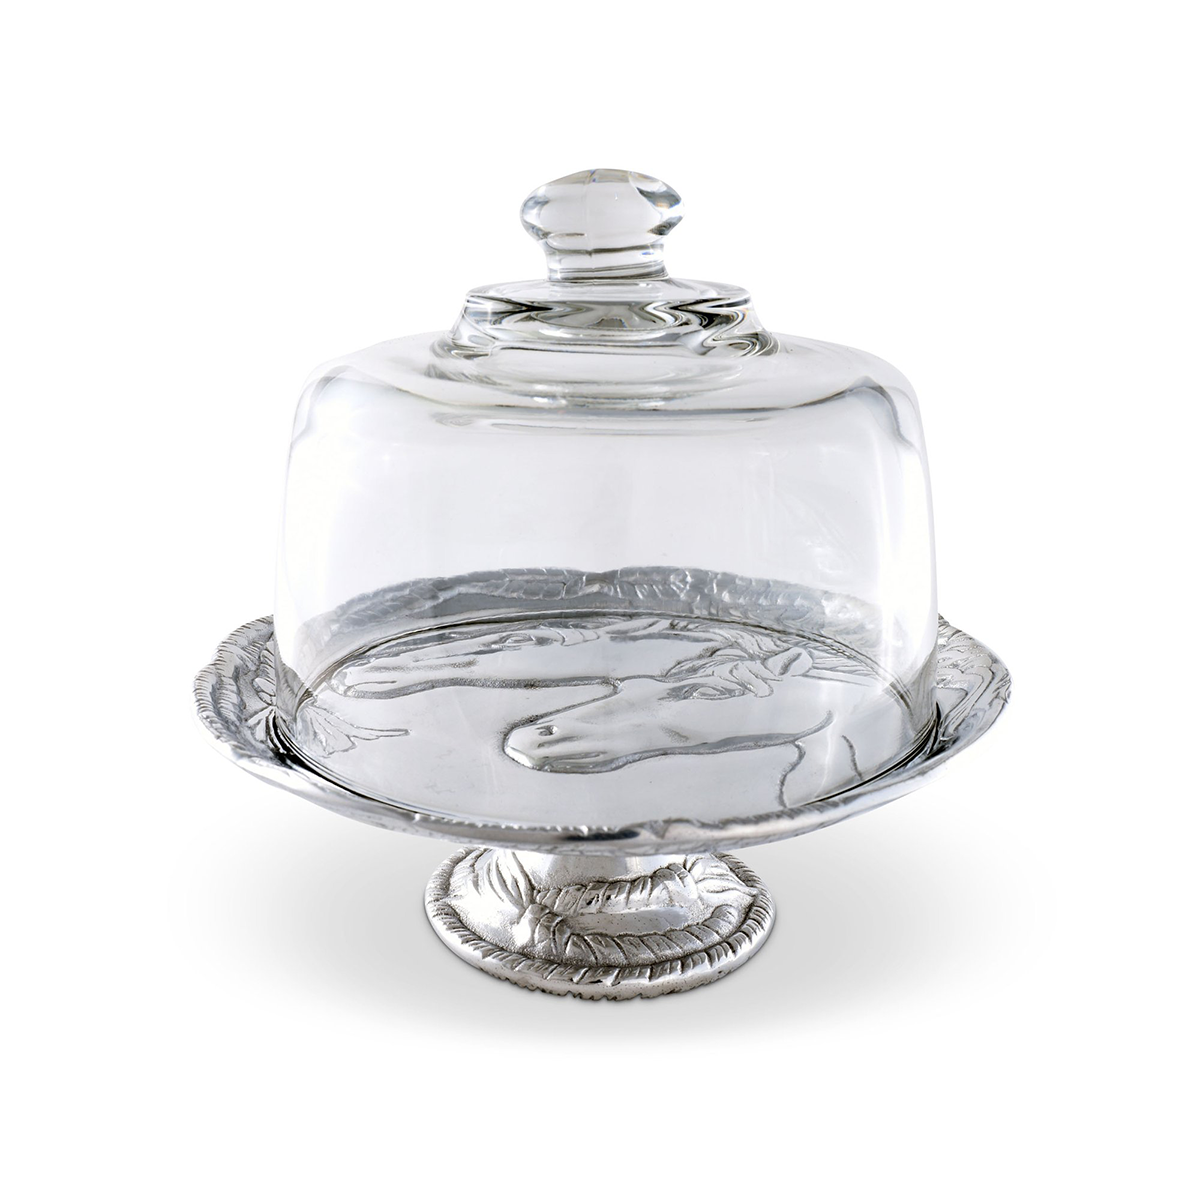 Arthur Court Equestrian Footed Plate With Glass Dome - 8""